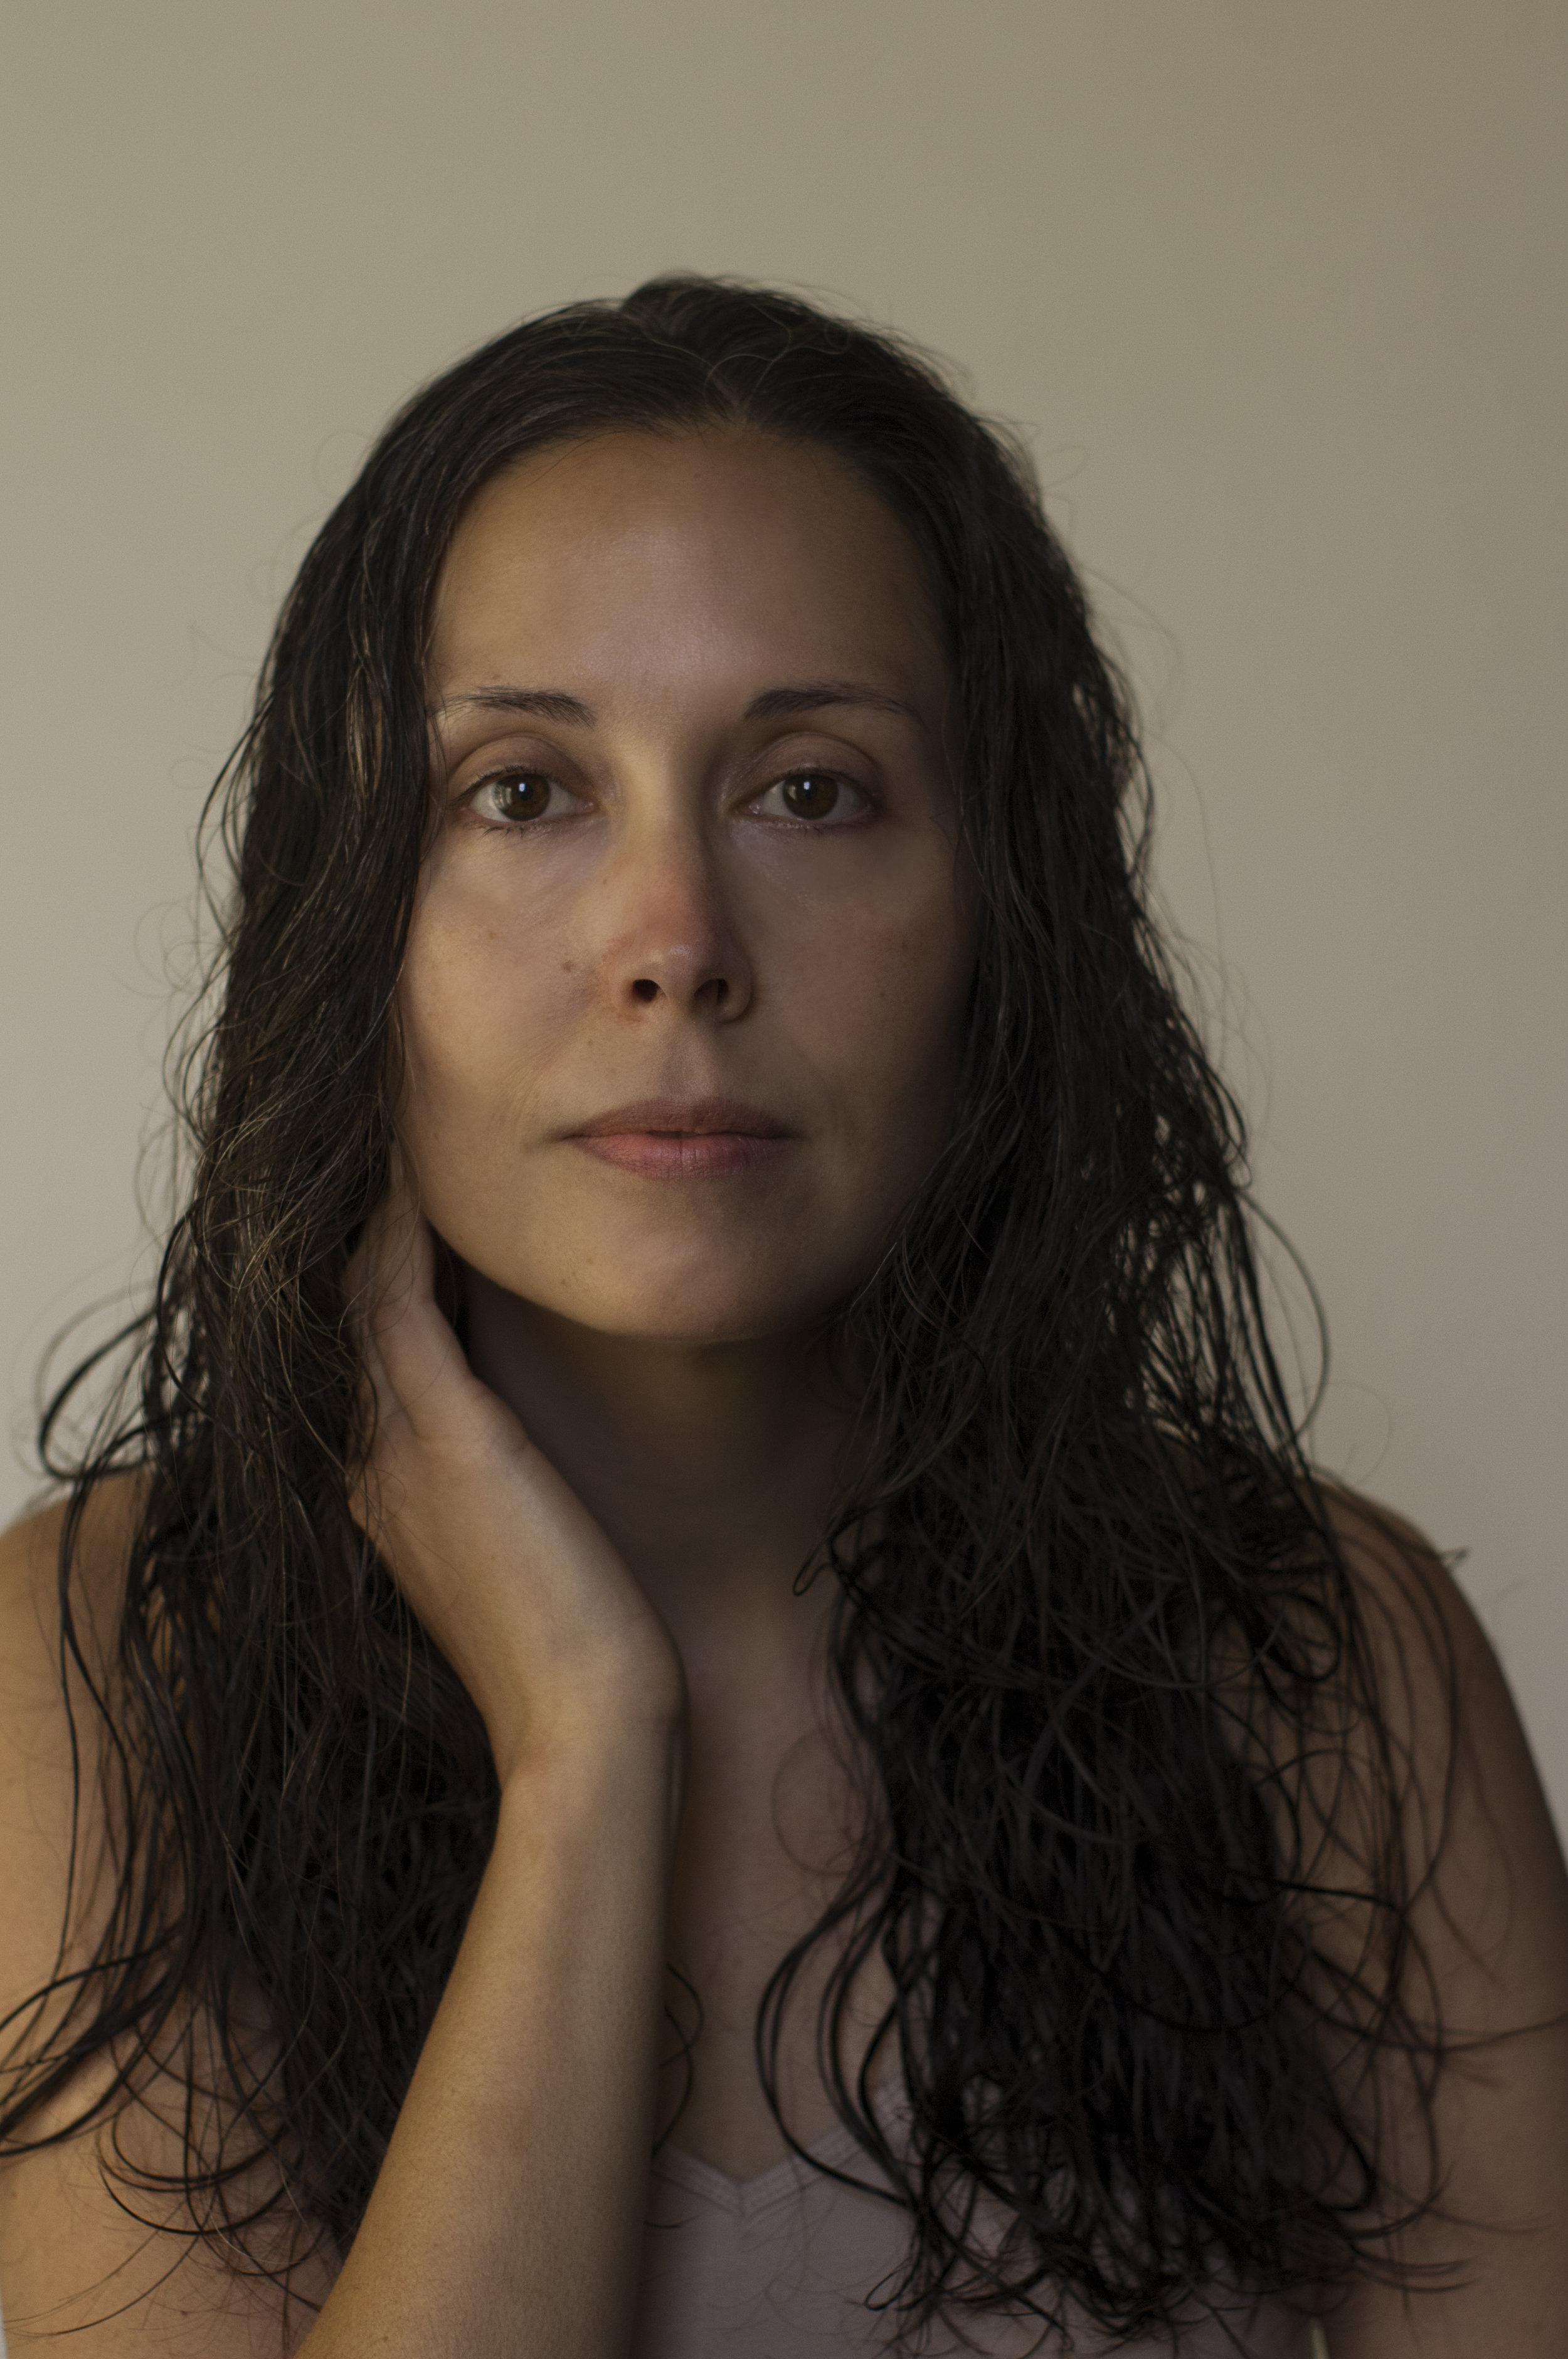 Portrait of a woman with no makeup on